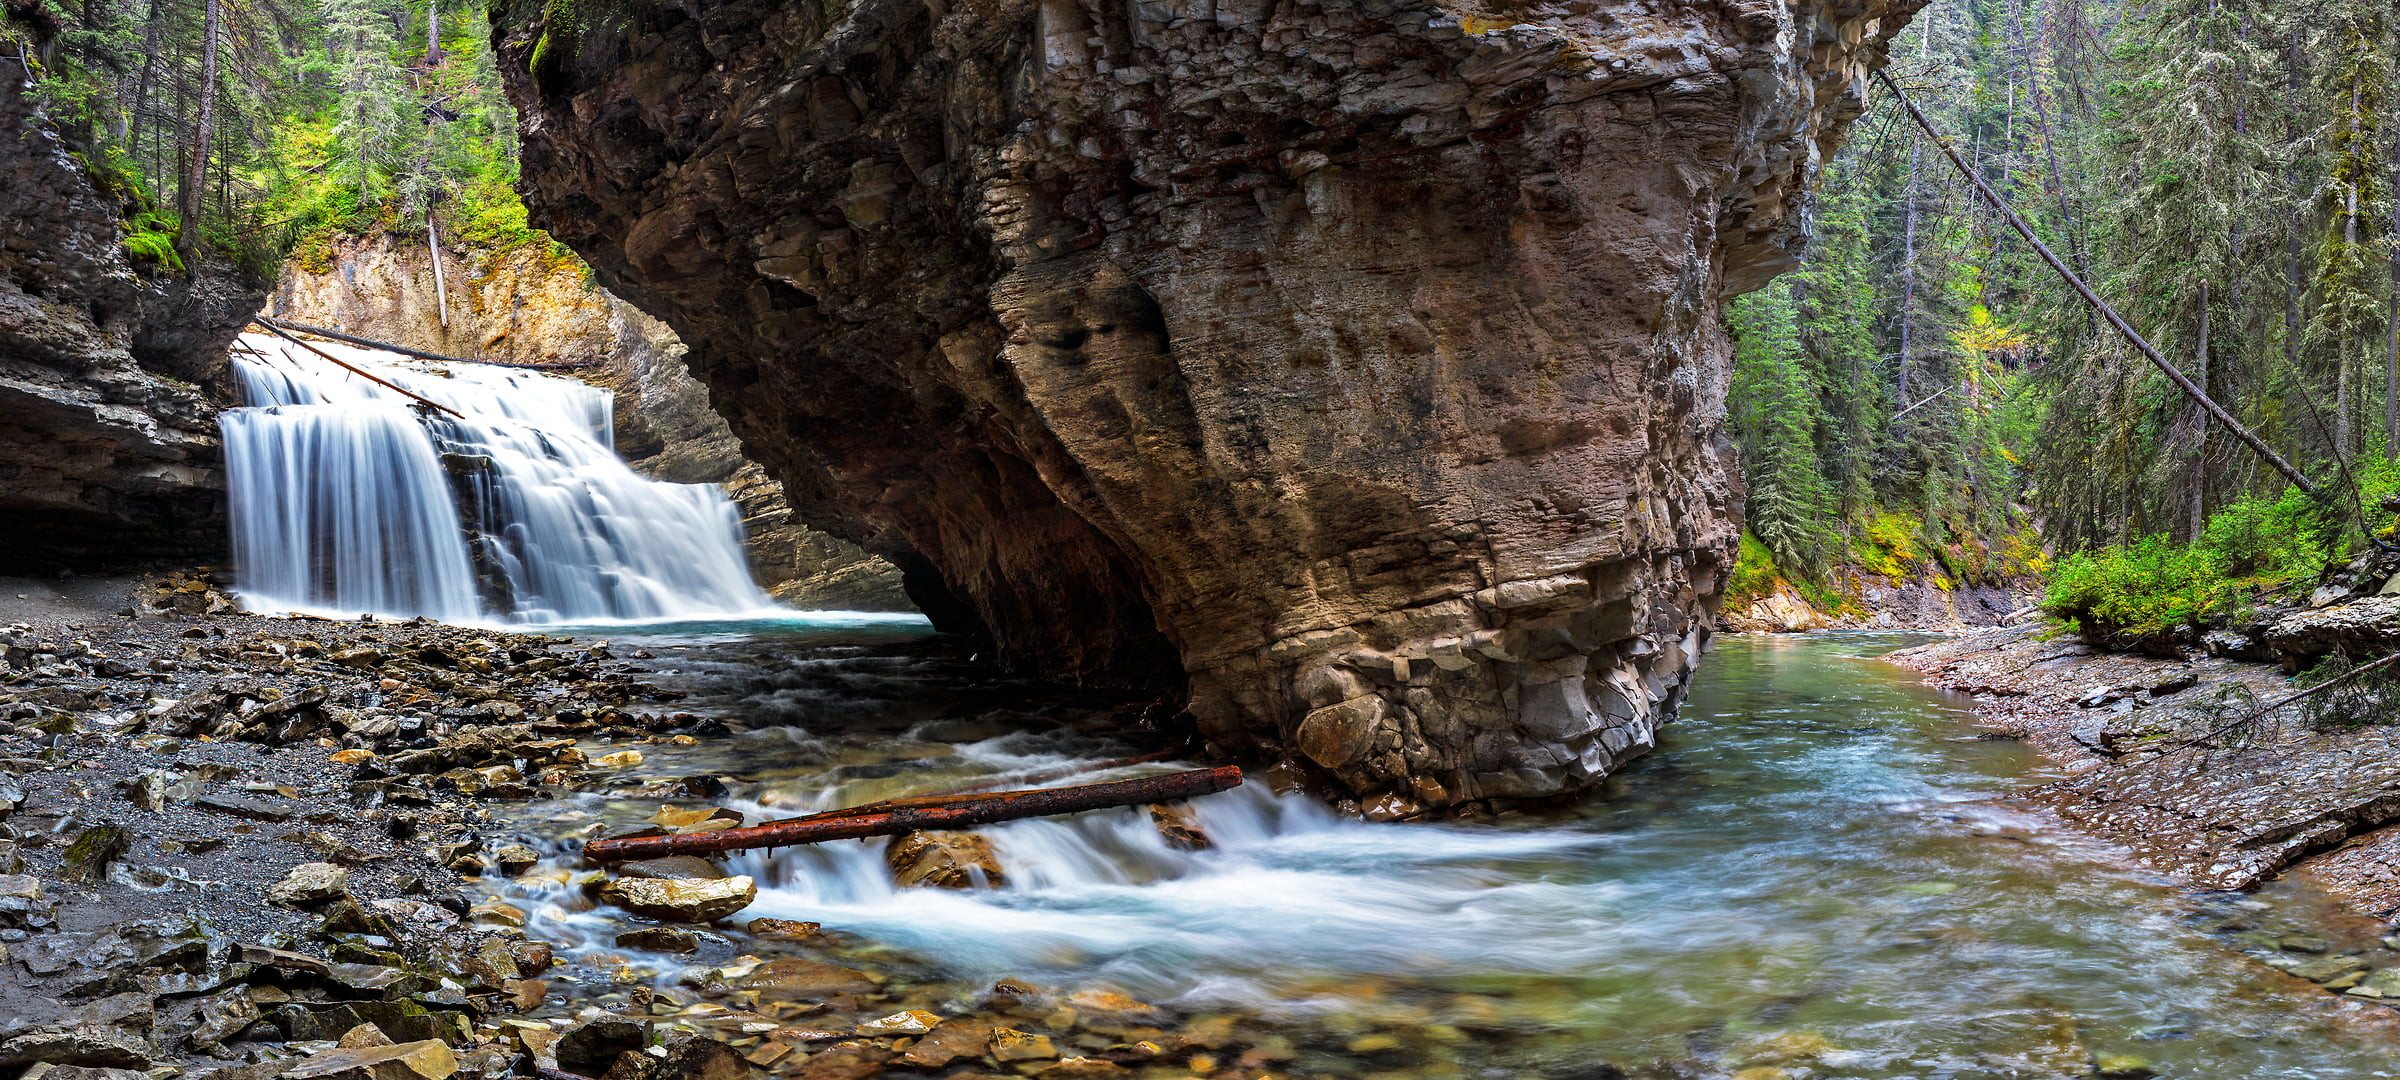 310 megapixels! A very high resolution, large-format VAST photo print of a waterfall, stream, rocks, and forest in the woods; fine art nature photo created by Chris Collacott in Banff National Park, Alberta, Canada